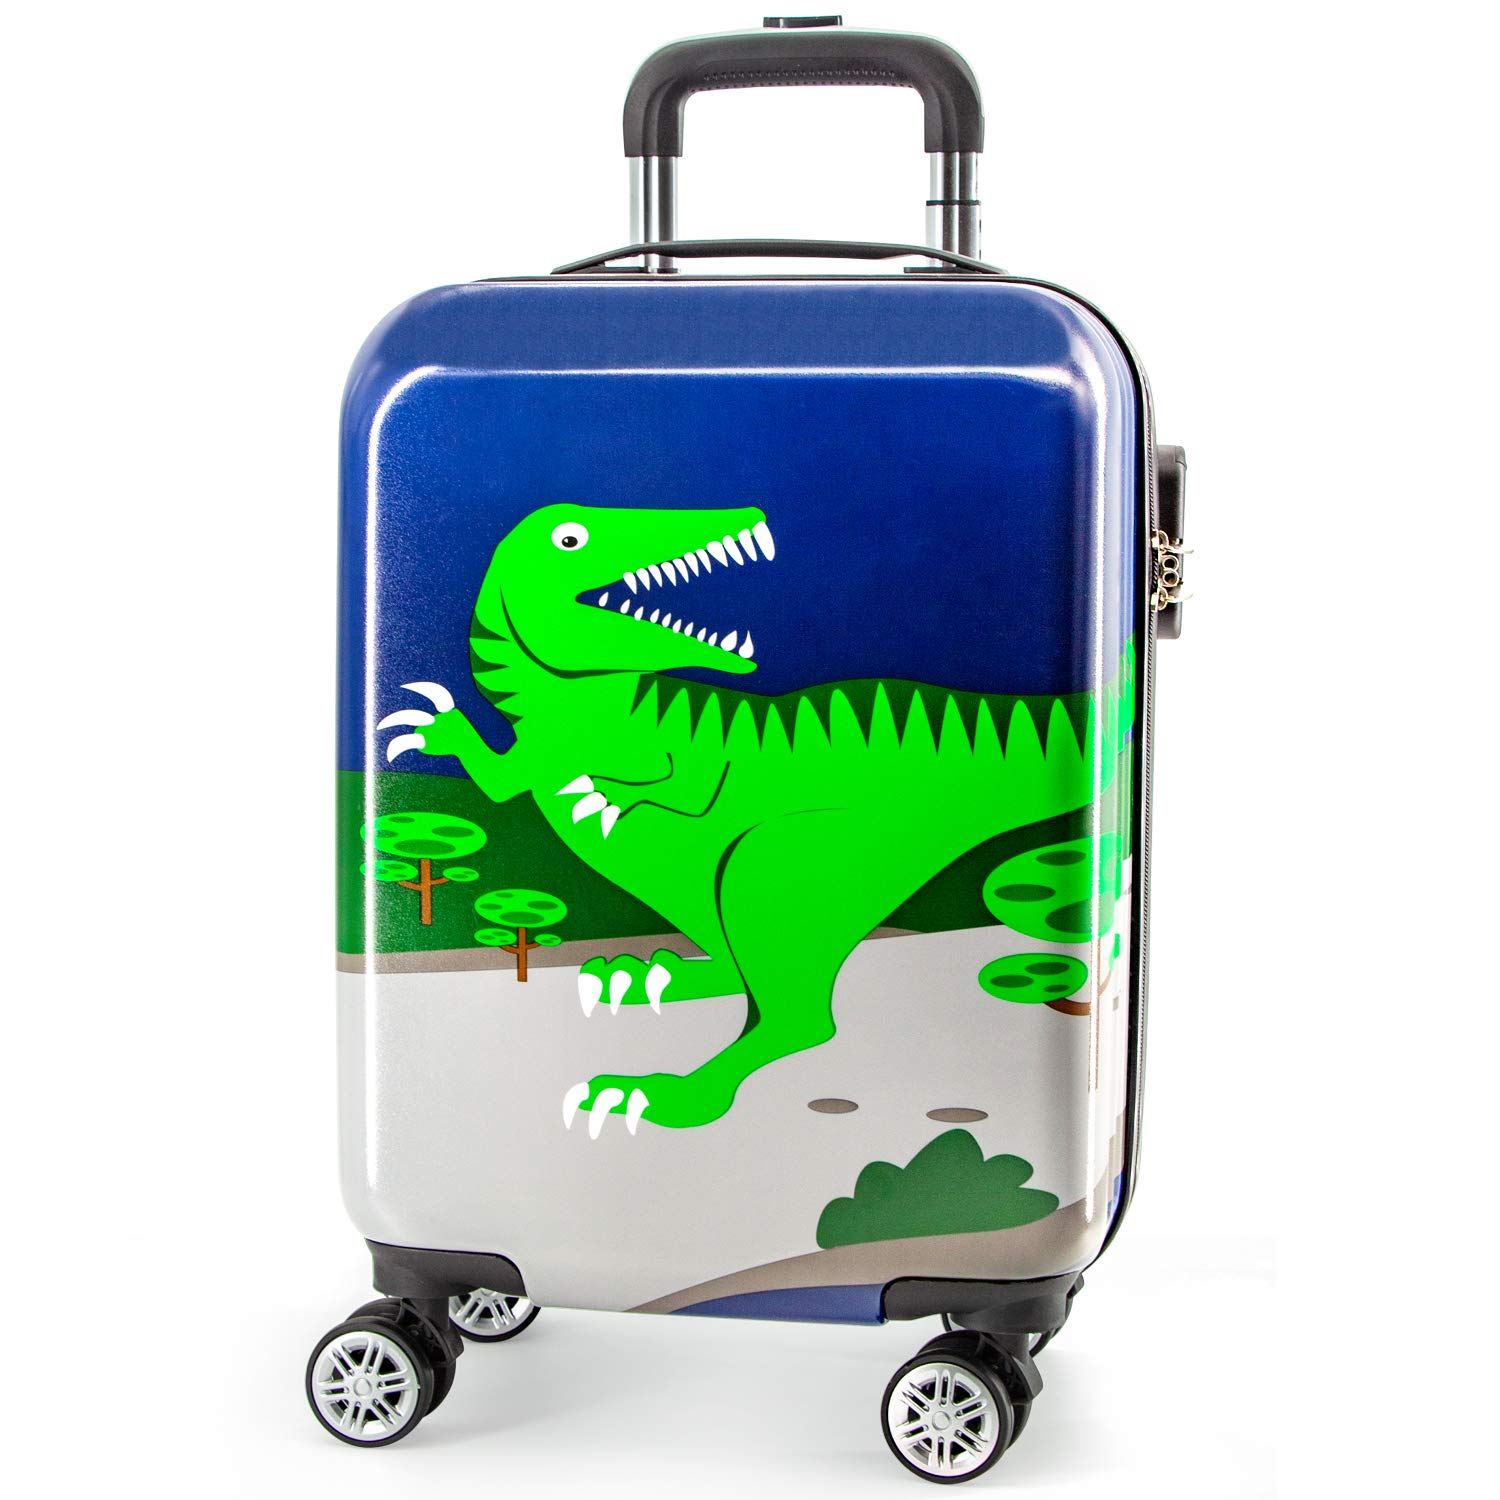 Lttxin Kids' Luggage 19 inch Polycarbonate Carry On Rolling Suitcae Hard Shell For Boys (Cute Dinosaur-Perfect Printing) by Lttxin Kids'